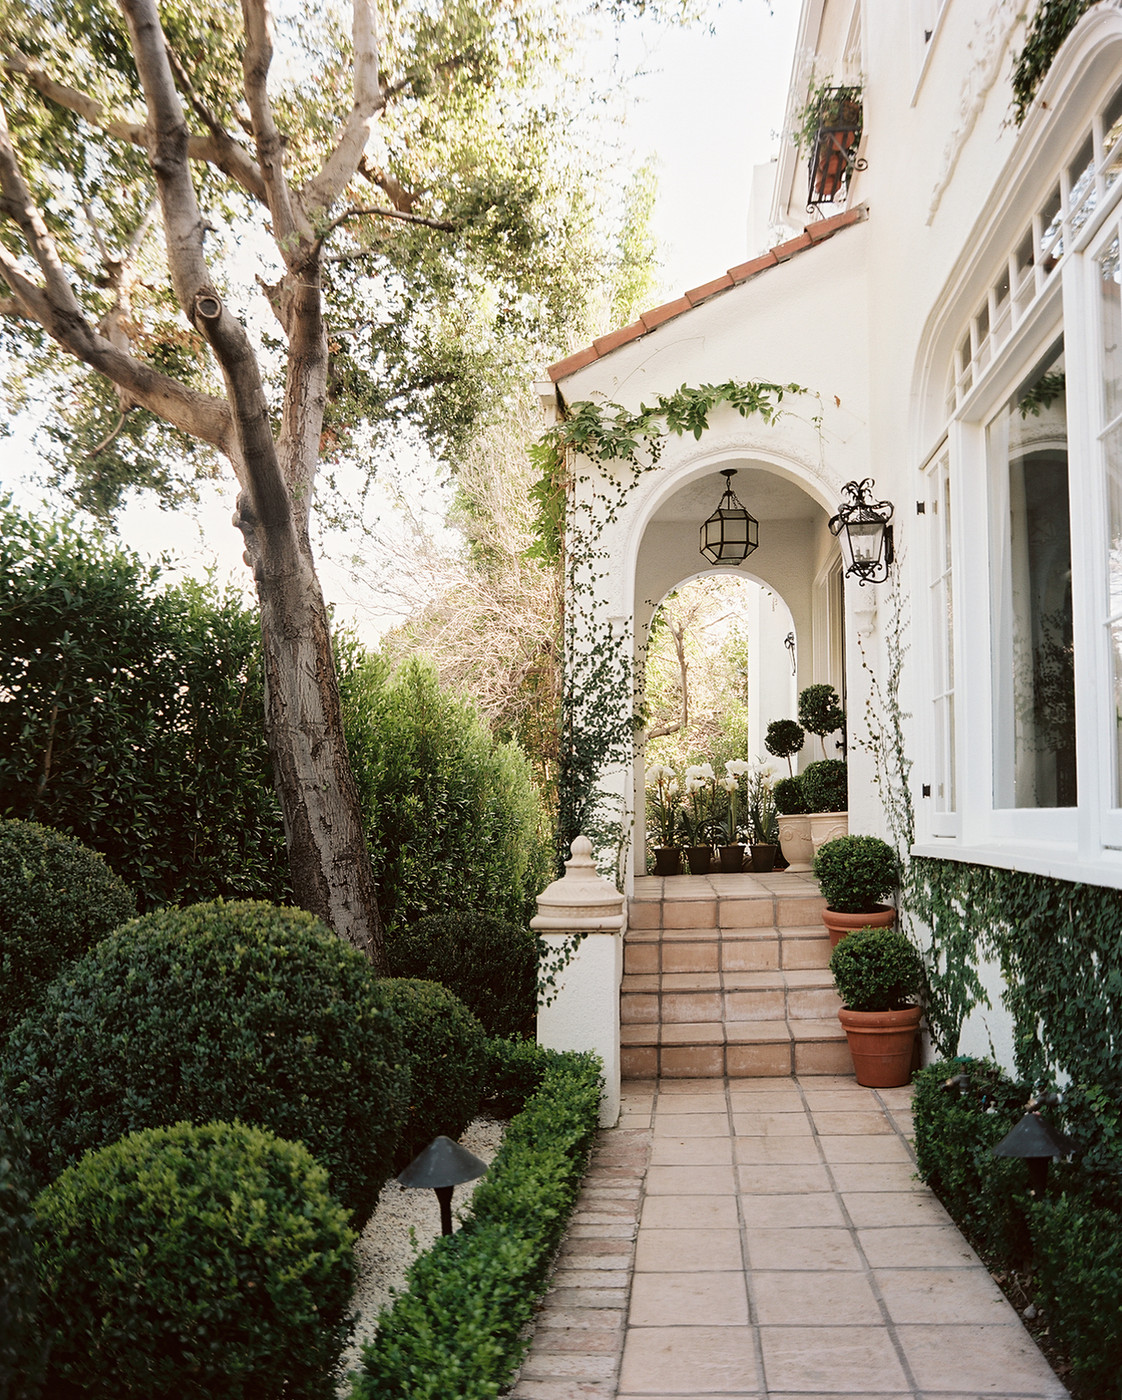 Mediterranean Exterior Of Home With Pathway Fountain: Front Stoop Photos, Design, Ideas, Remodel, And Decor